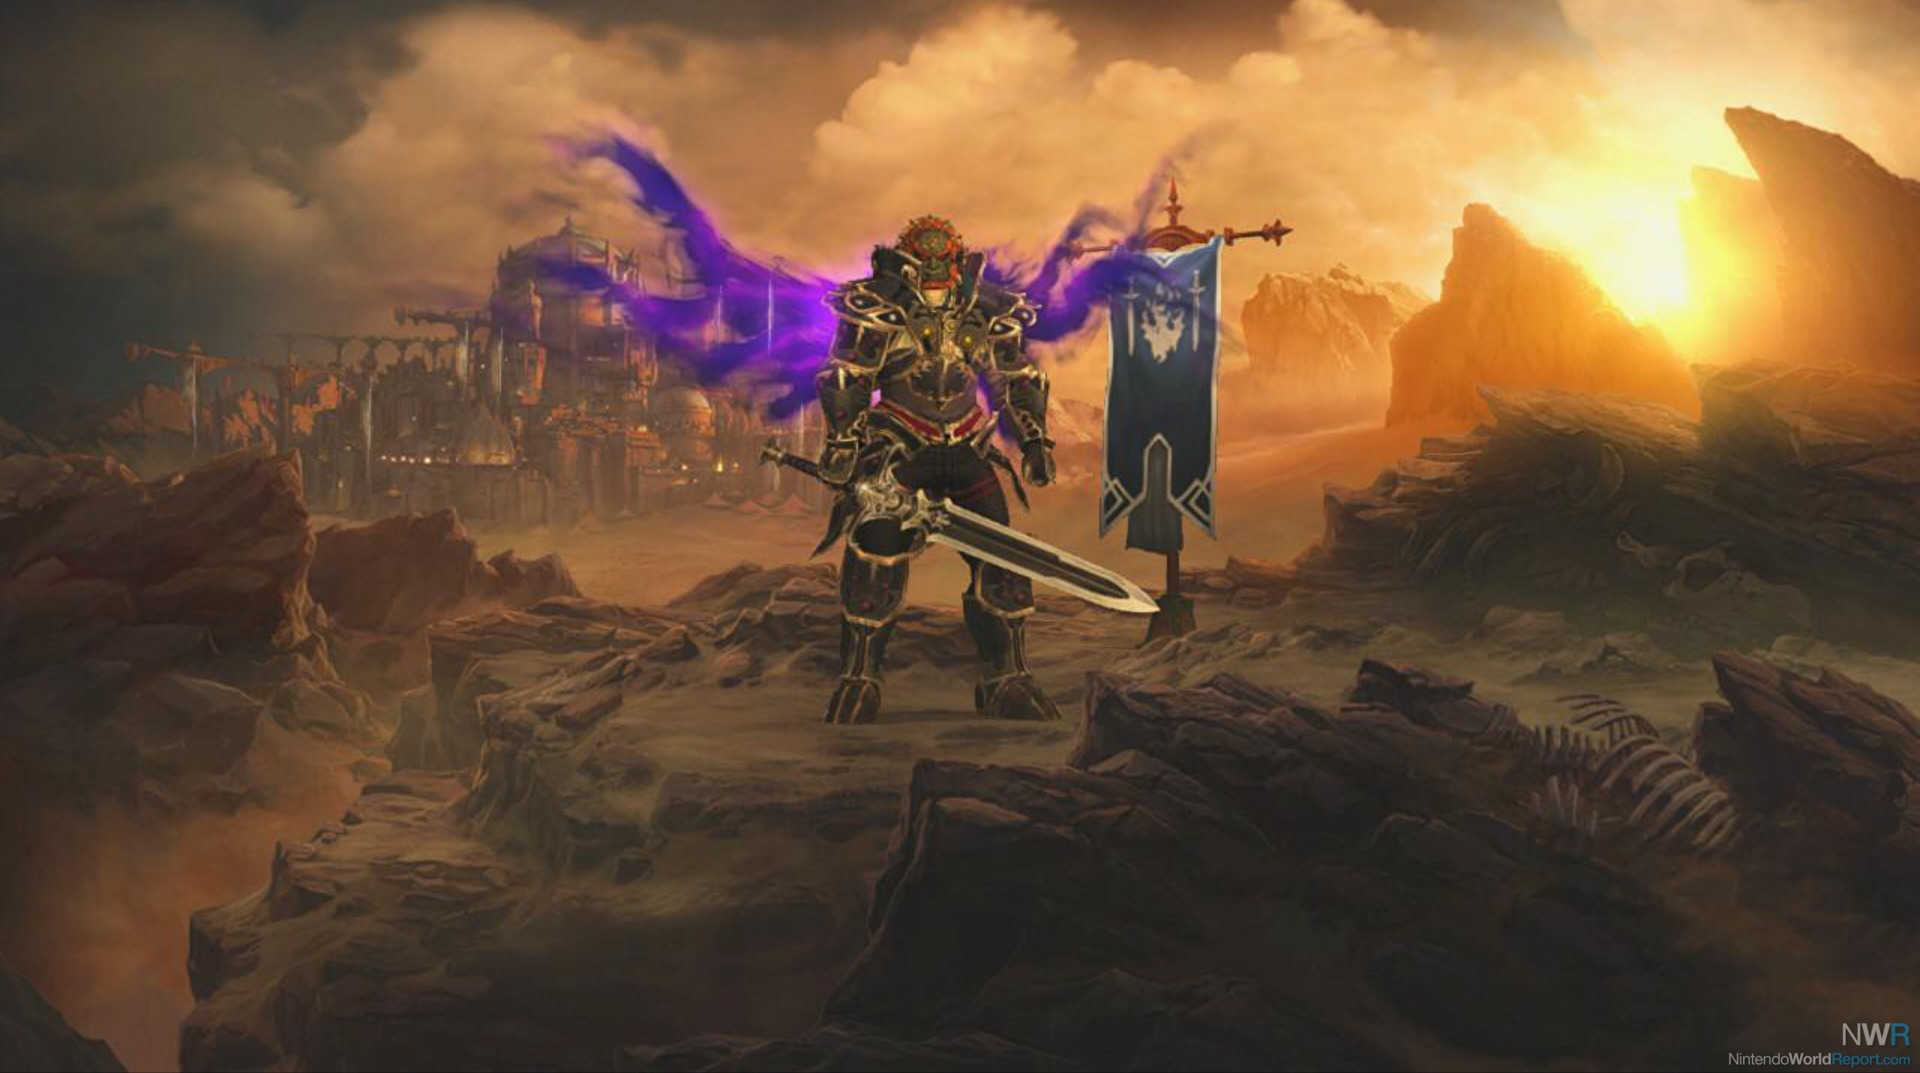 Diablo 3 Leaked For Switch, Will Offer Nintendo Exclusive Cosmetics